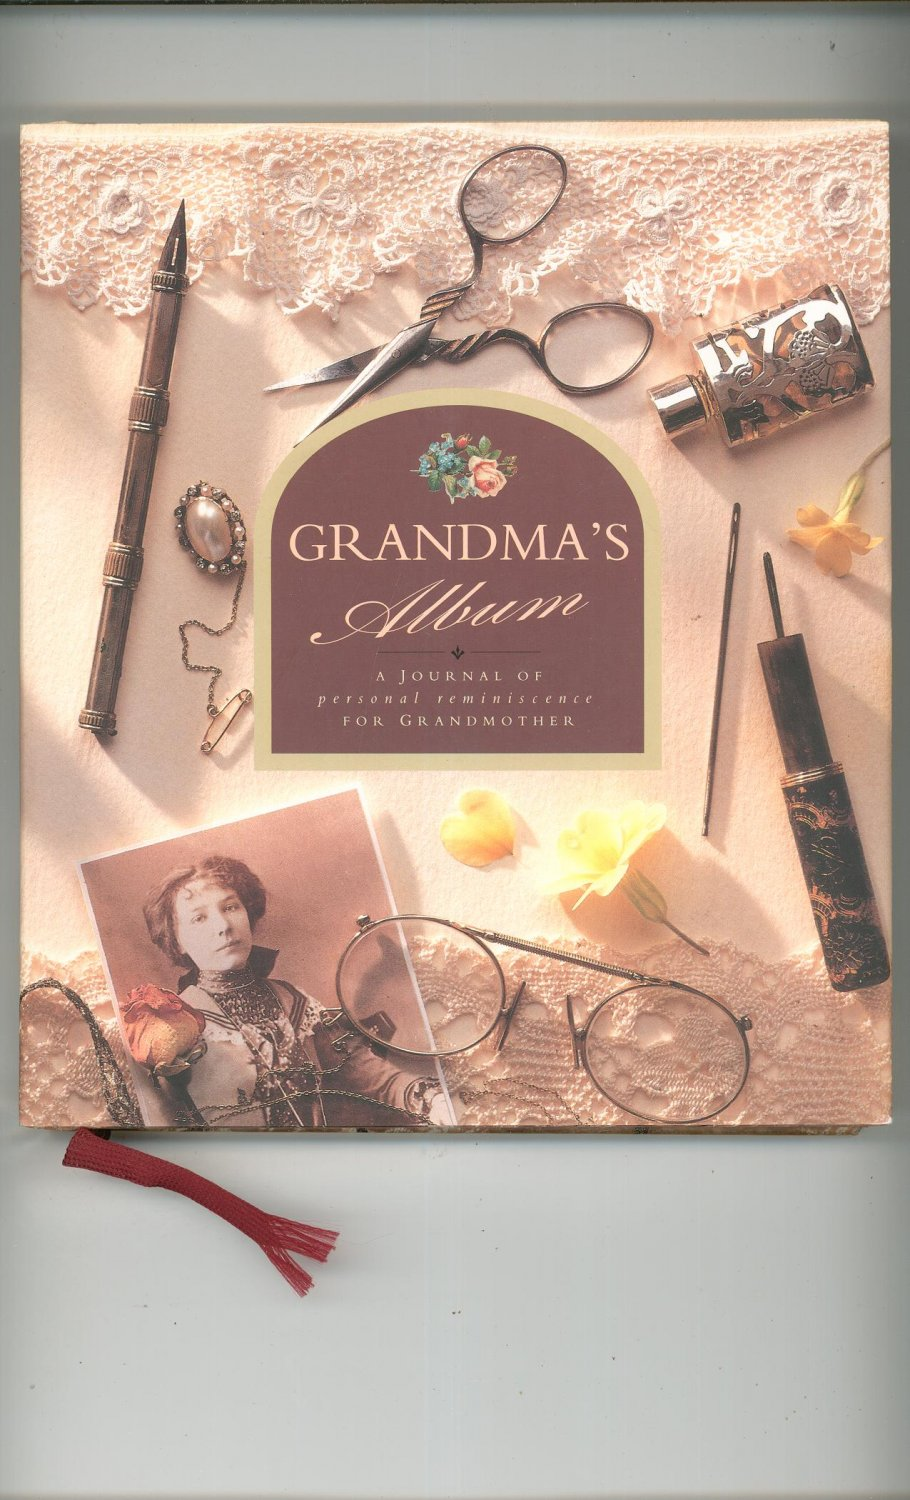 Grandma's Album Journal Of Personal Reminiscence For Grandmother 185833103x Never Used